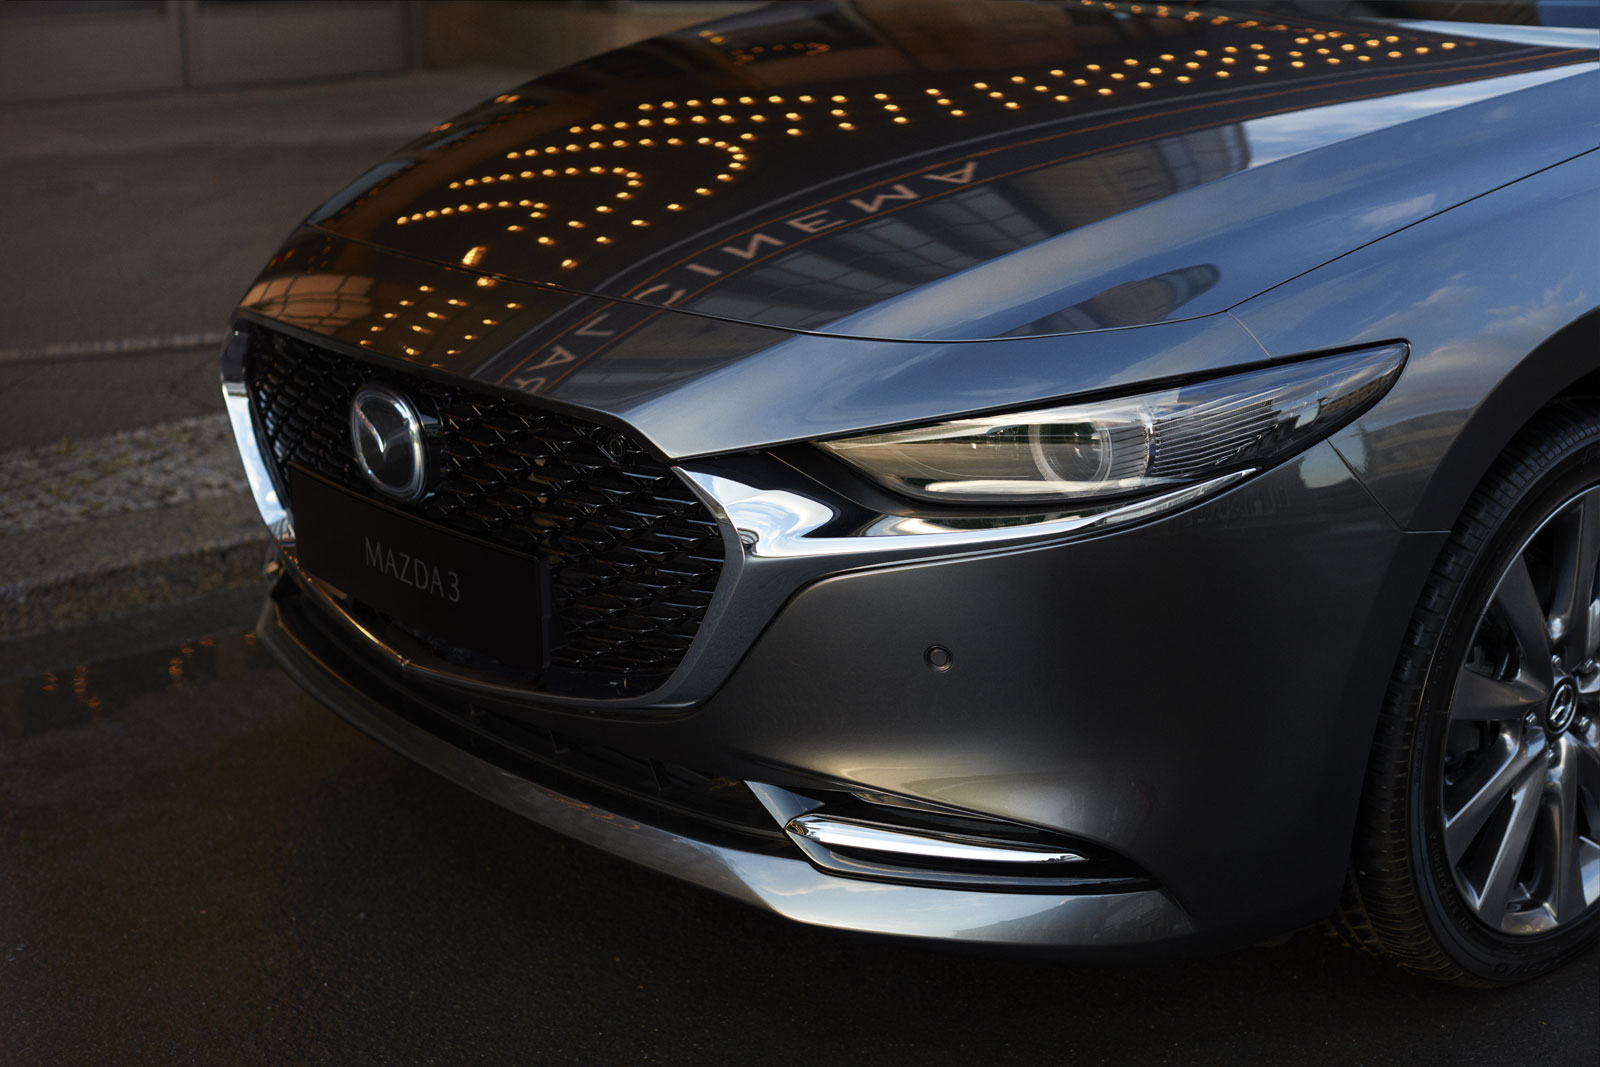 New Mazda3 Sedan Front End Design